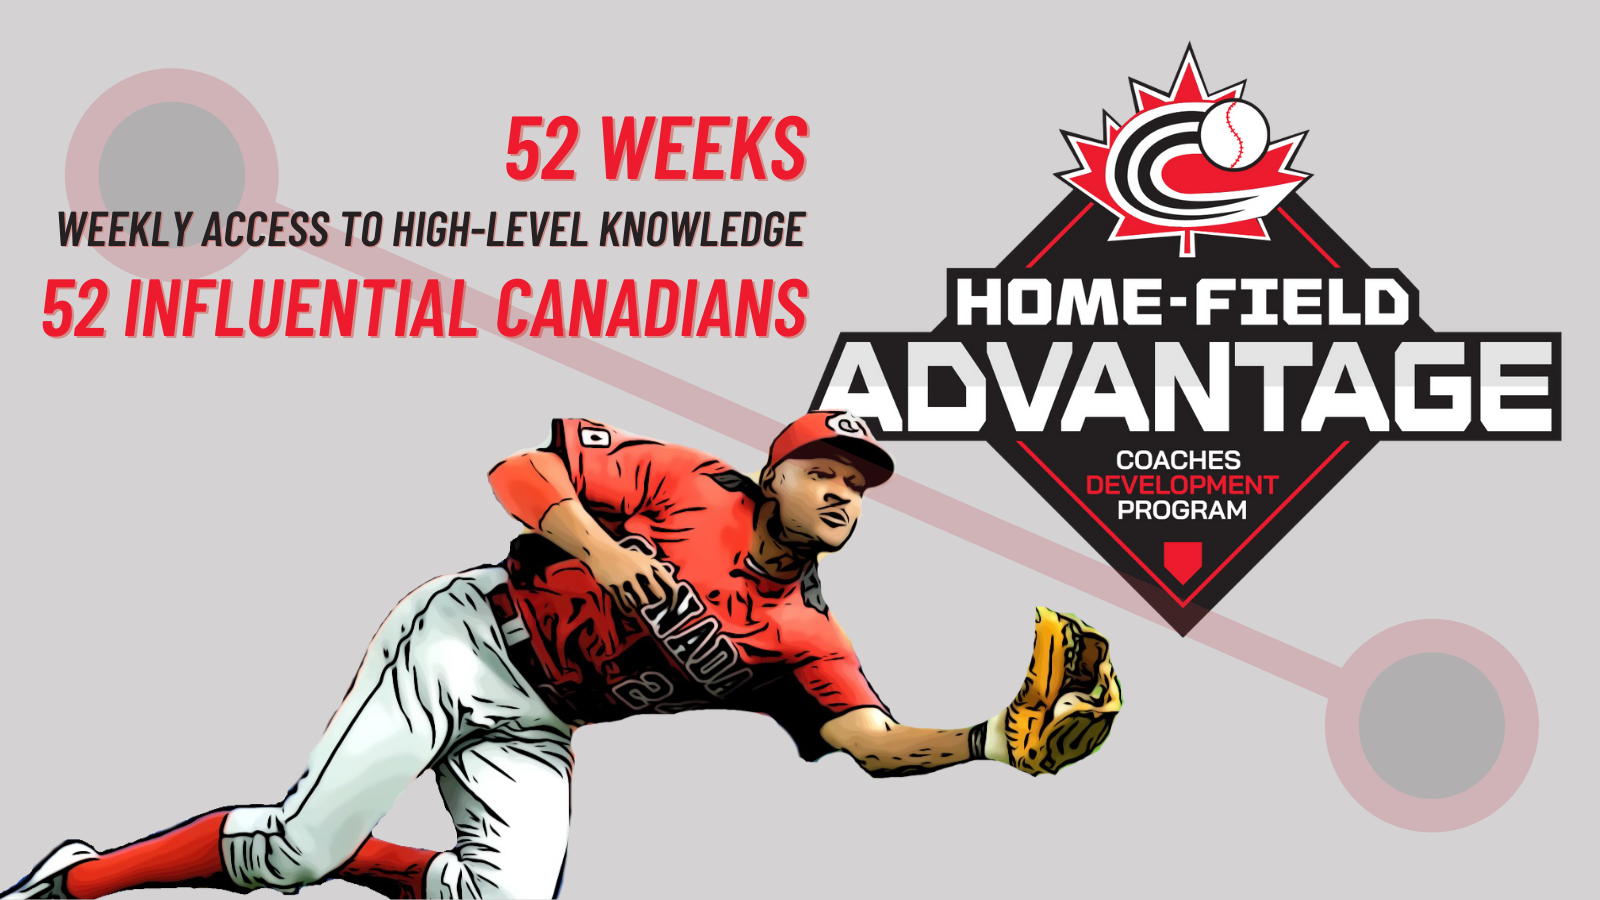 INTRODUCING HOME-FIELD ADVANTAGE!